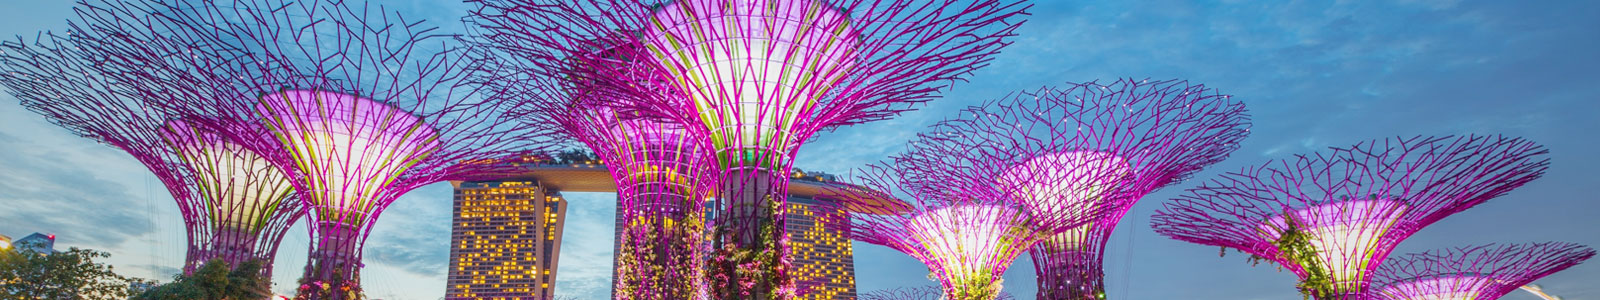 Singapore Malaysia Thailand Tour Packages